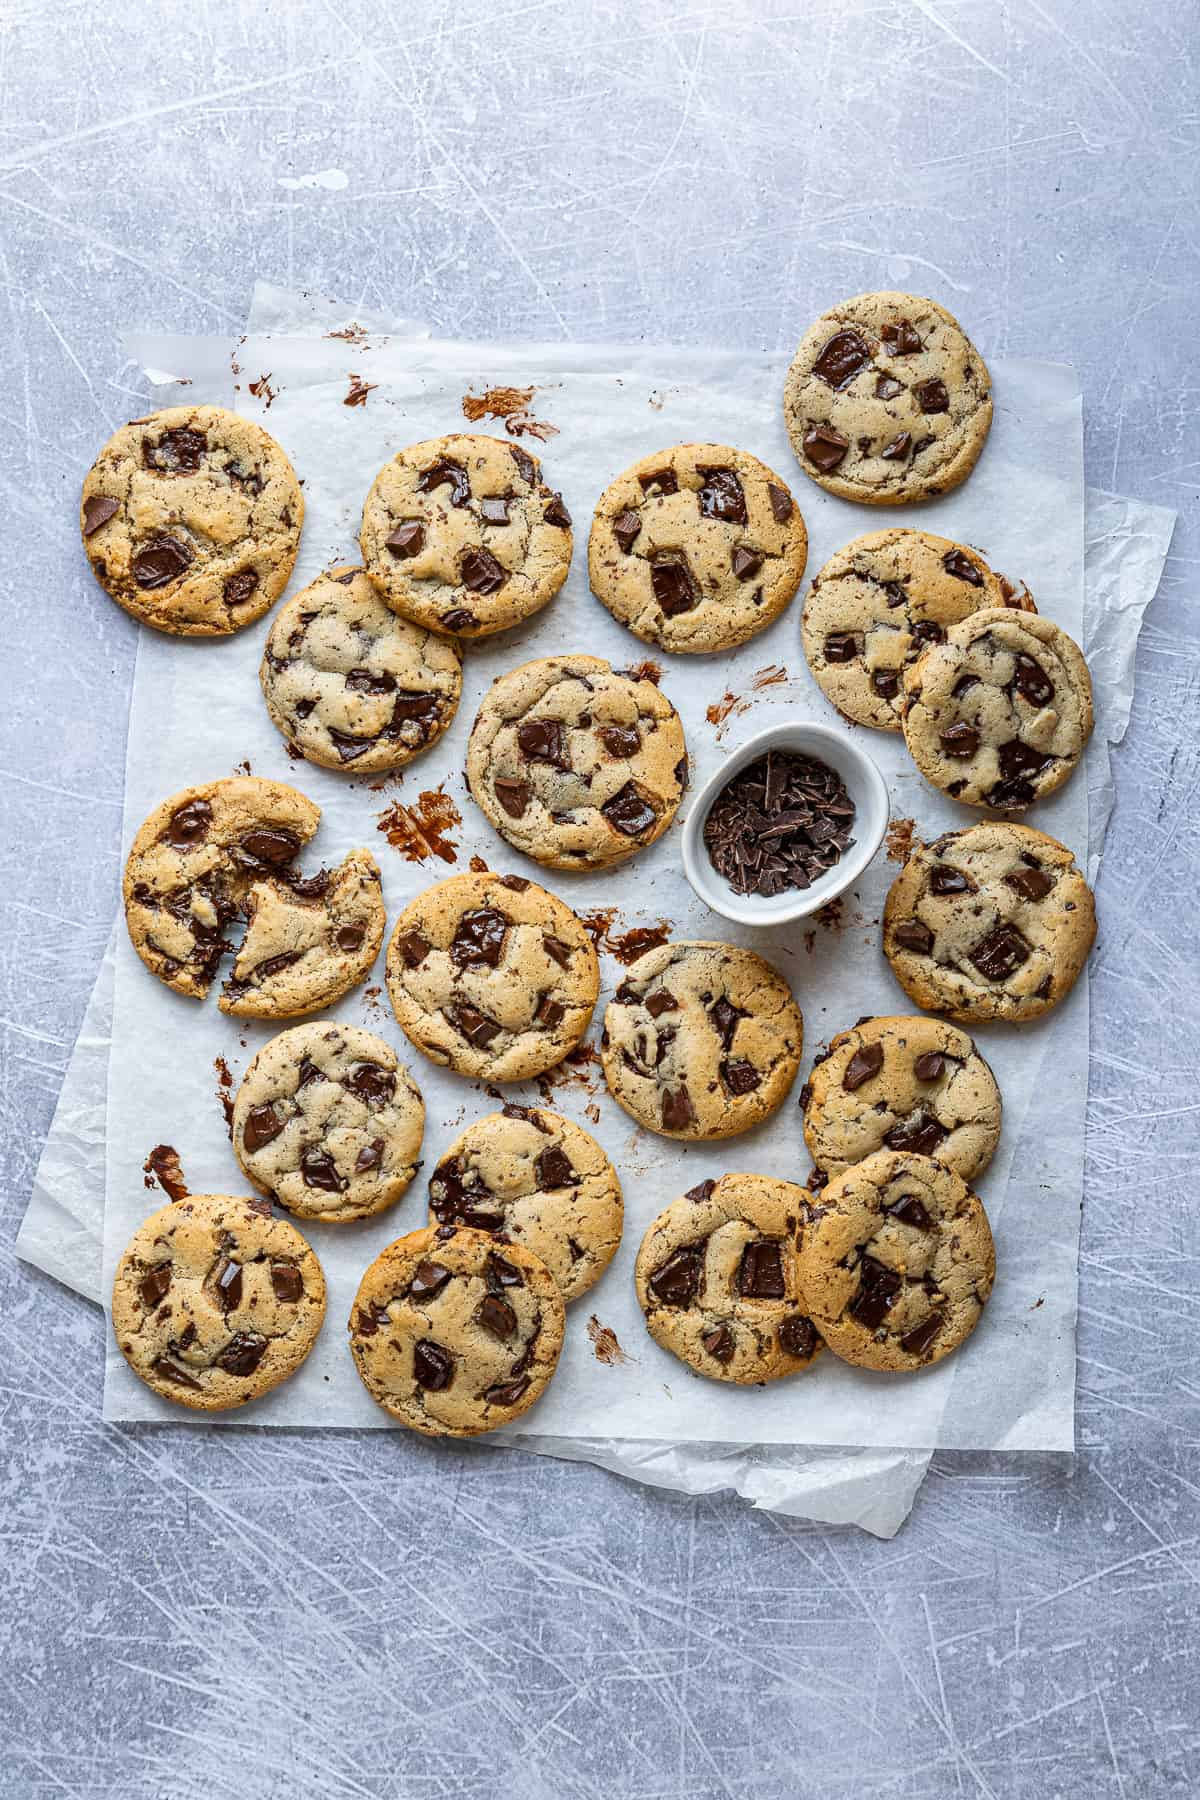 Chocolate chip cookies and a bowl of chopped chocolate on a sheet of white baking parchment on a metal surface.